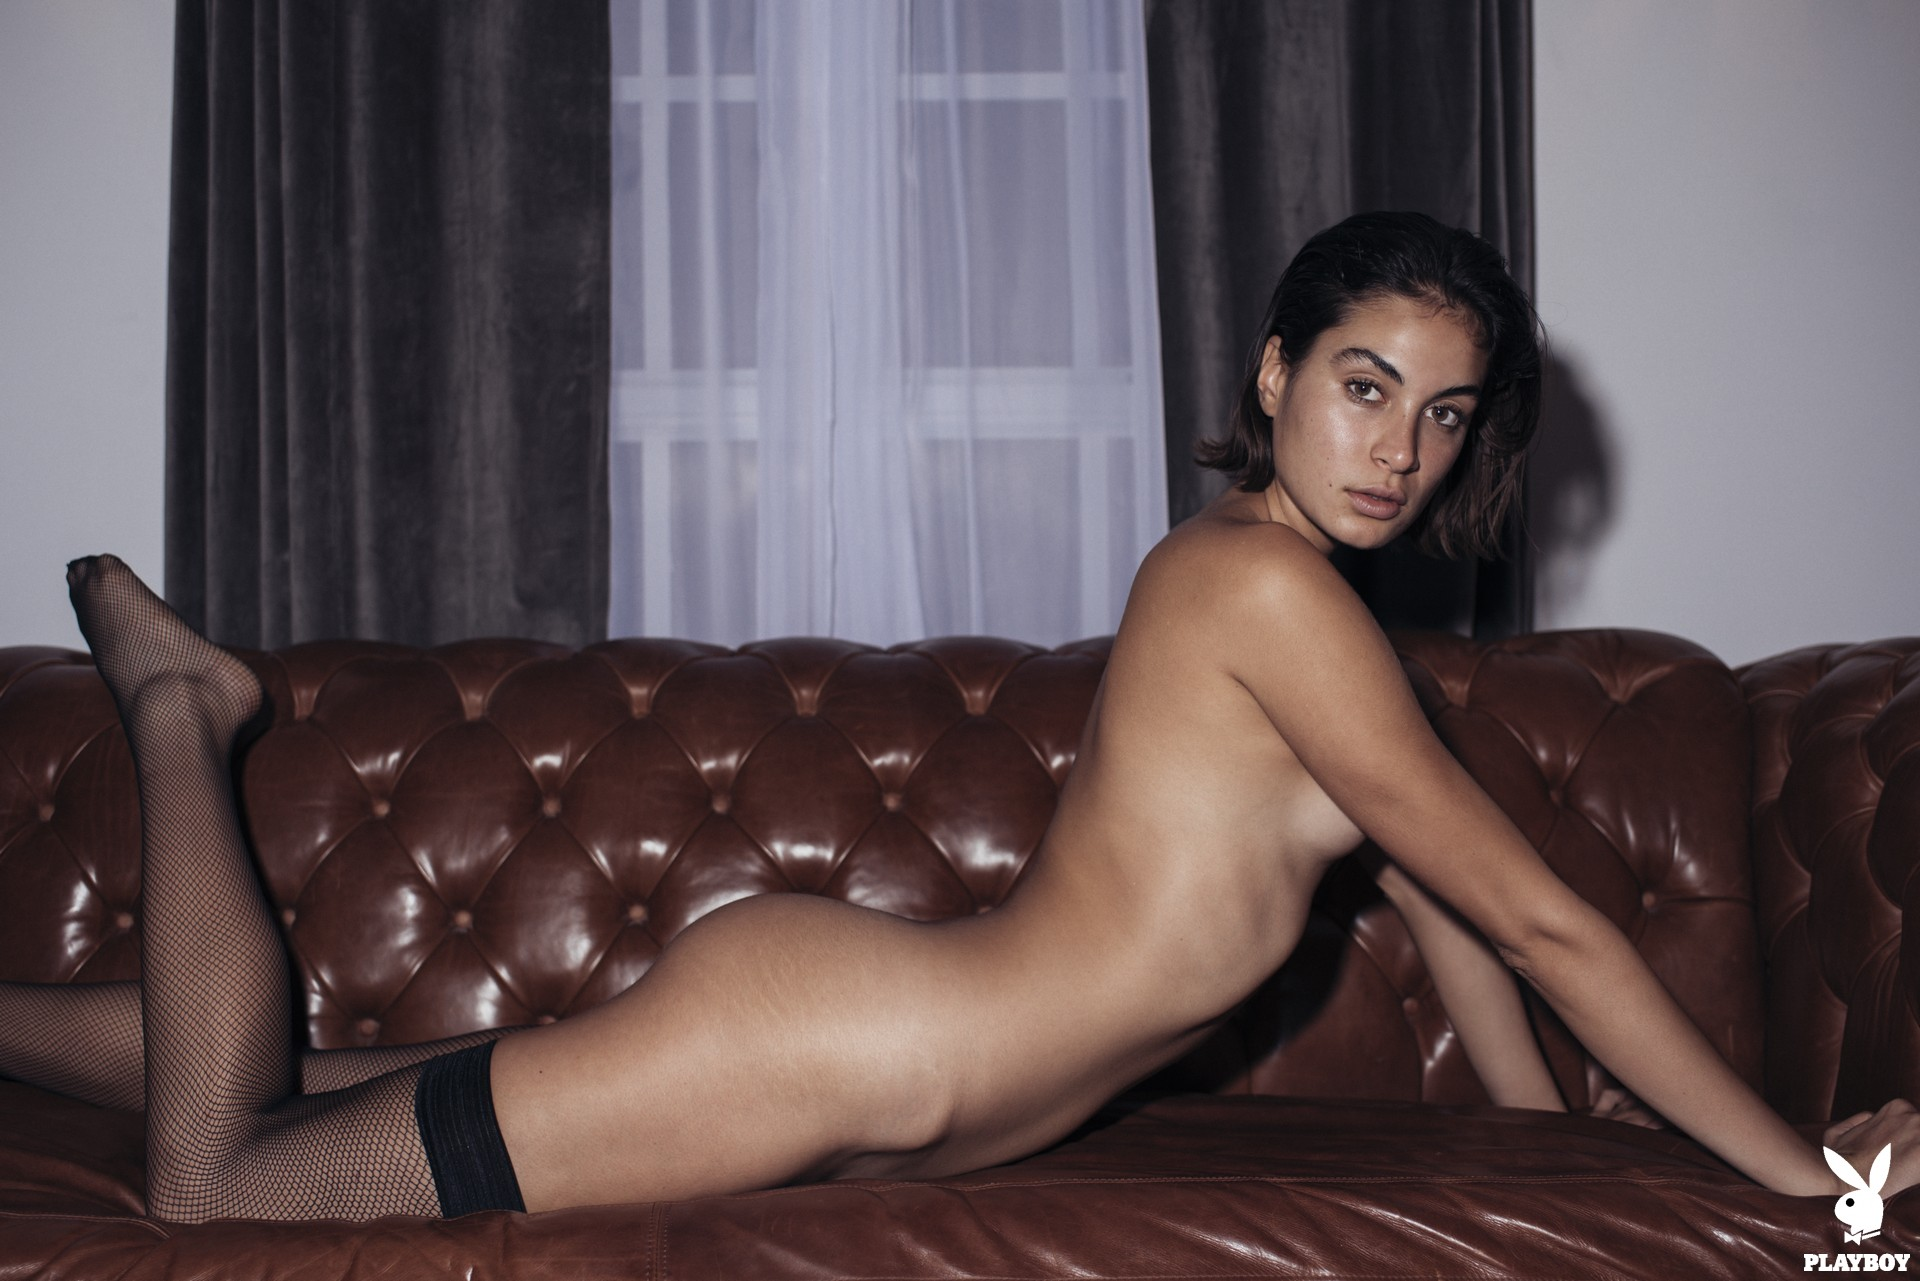 Milena in A Day in the Life - Playboy Plus 4